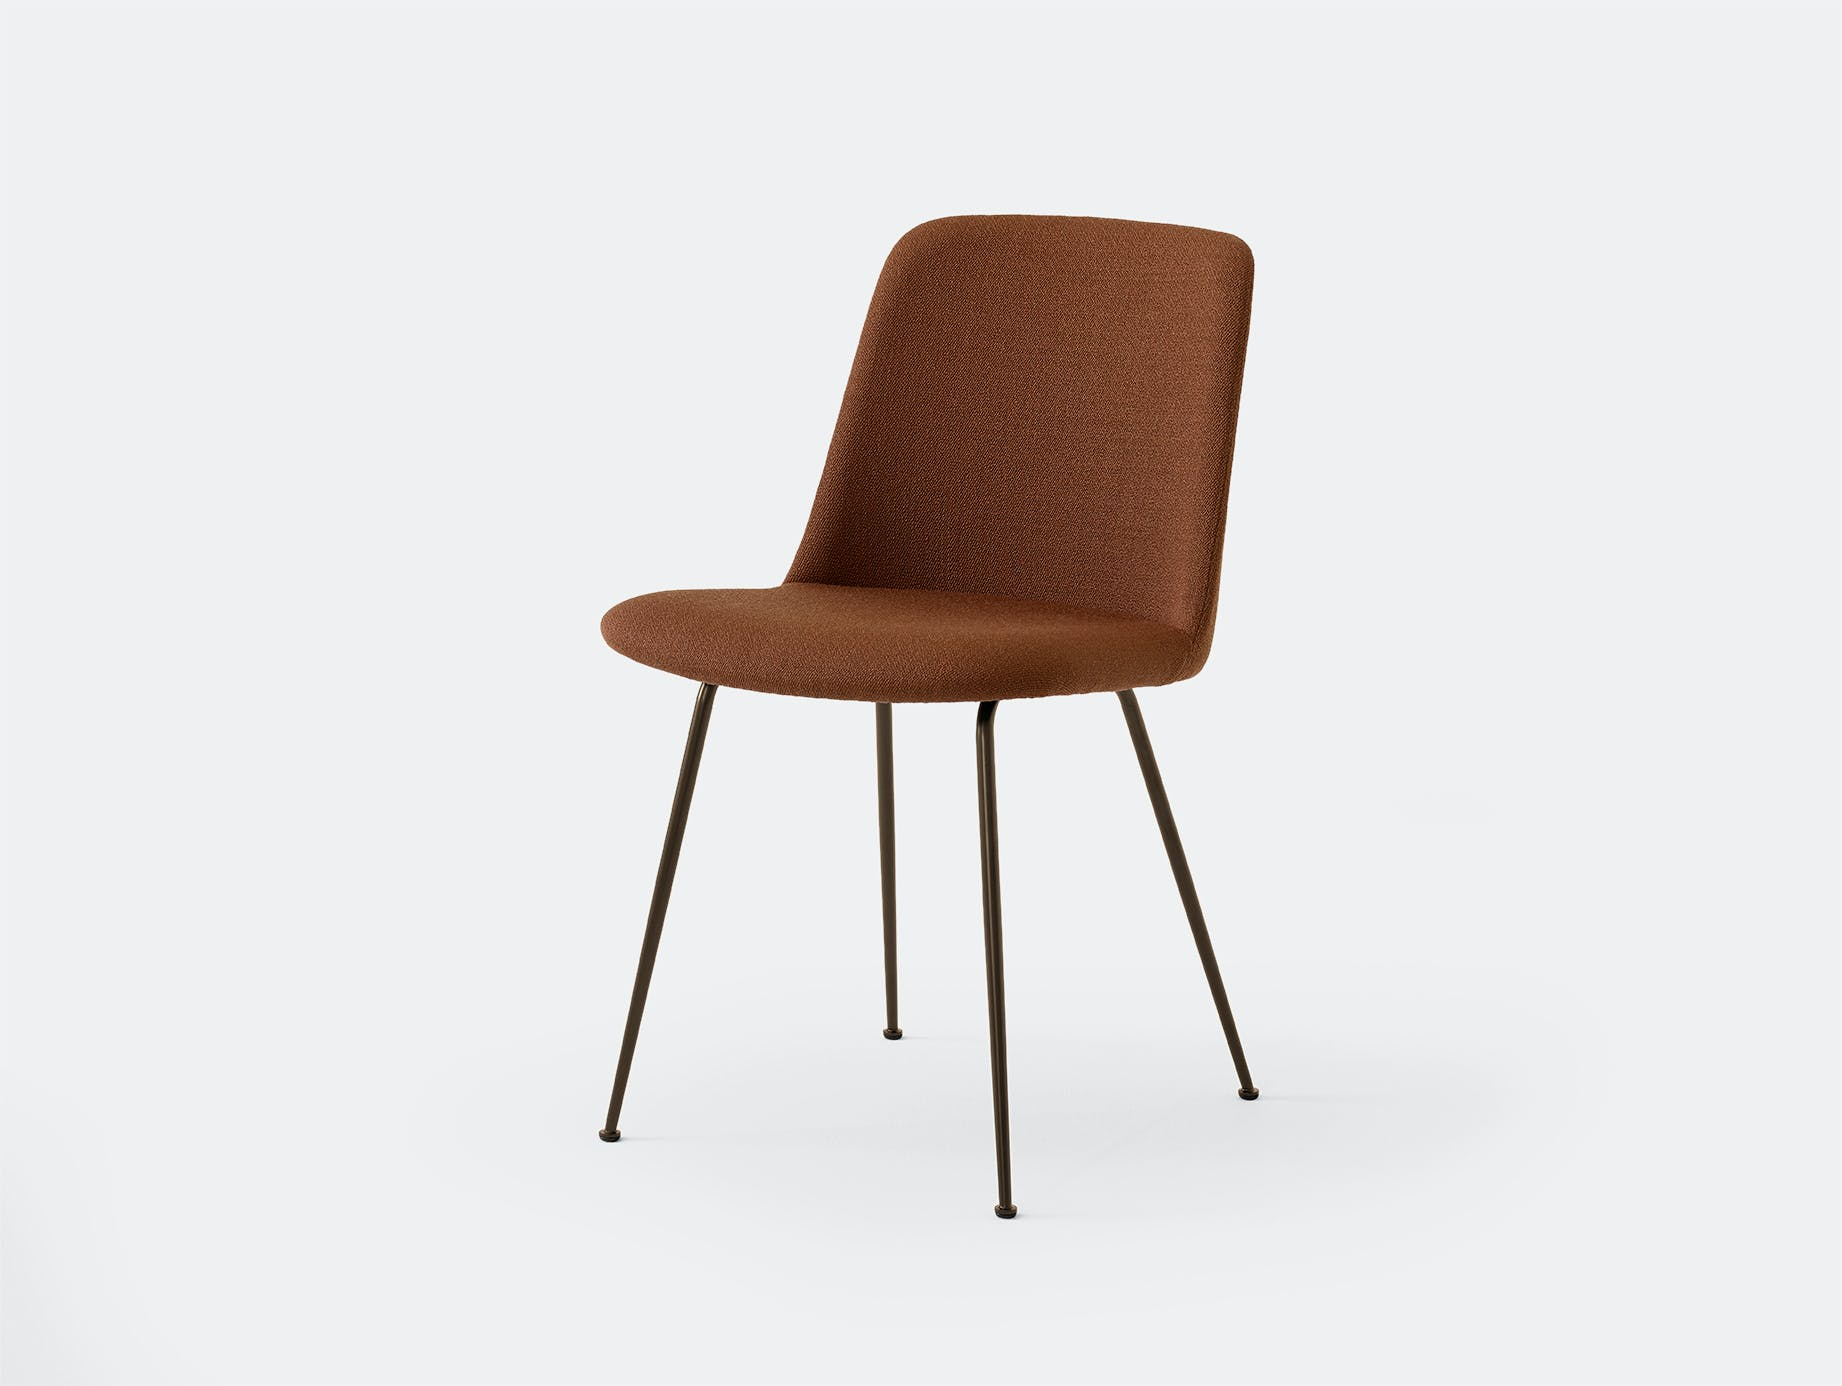 Andtradition rely chair four leg brz vidar 363